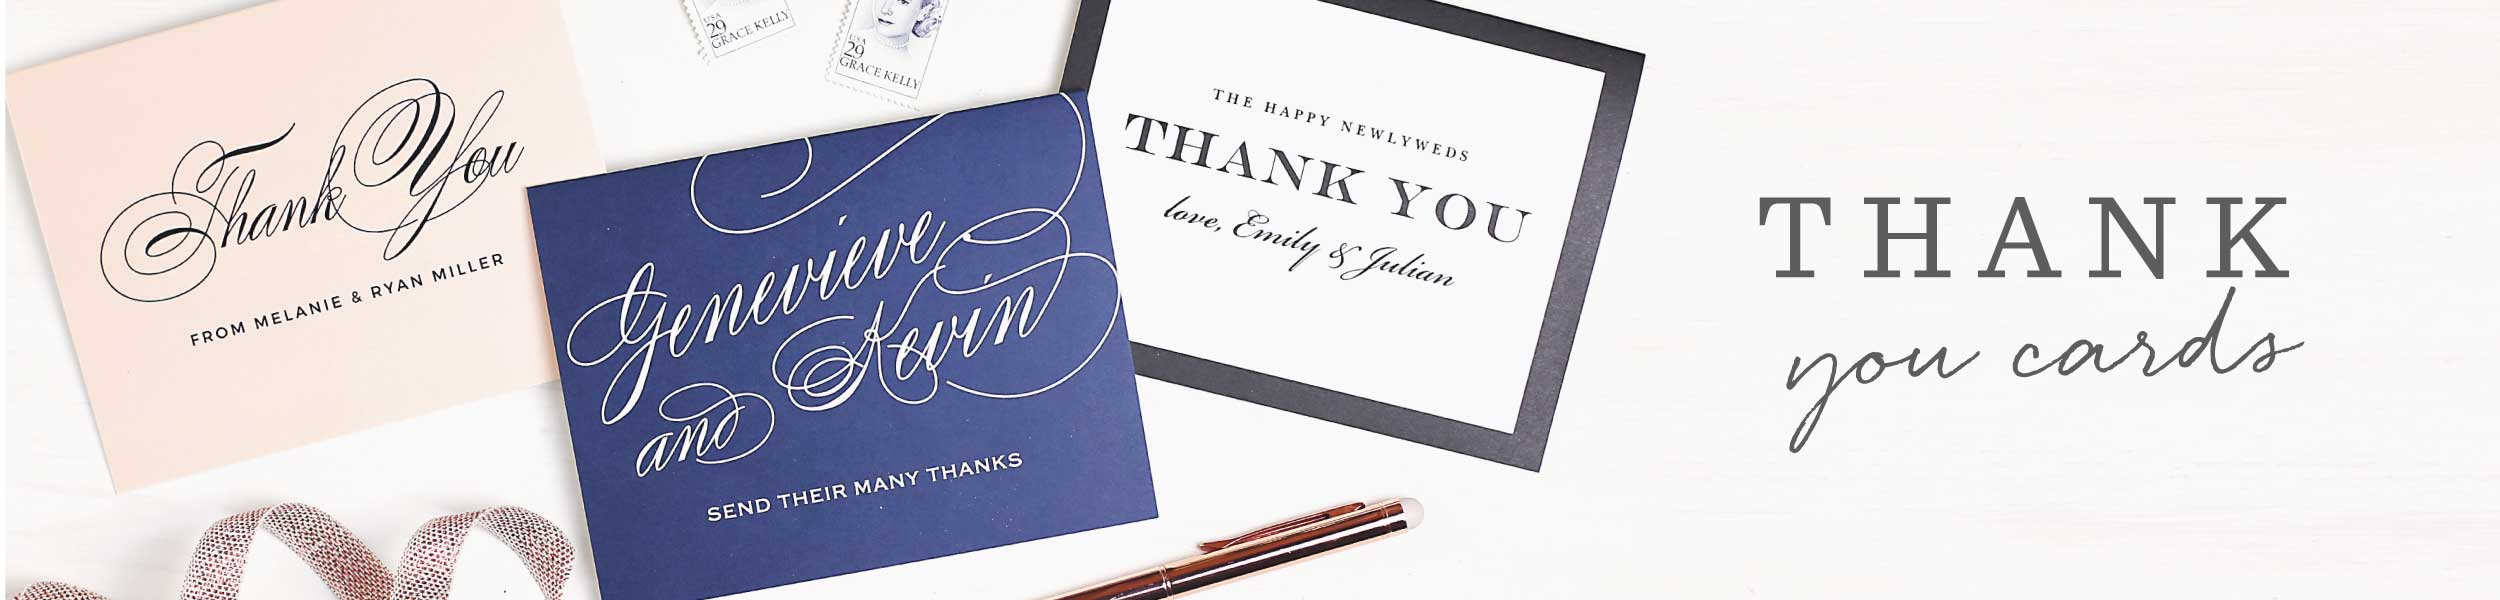 Wedding Thank You Cards & Wedding Thank You Notes by Basic Invite